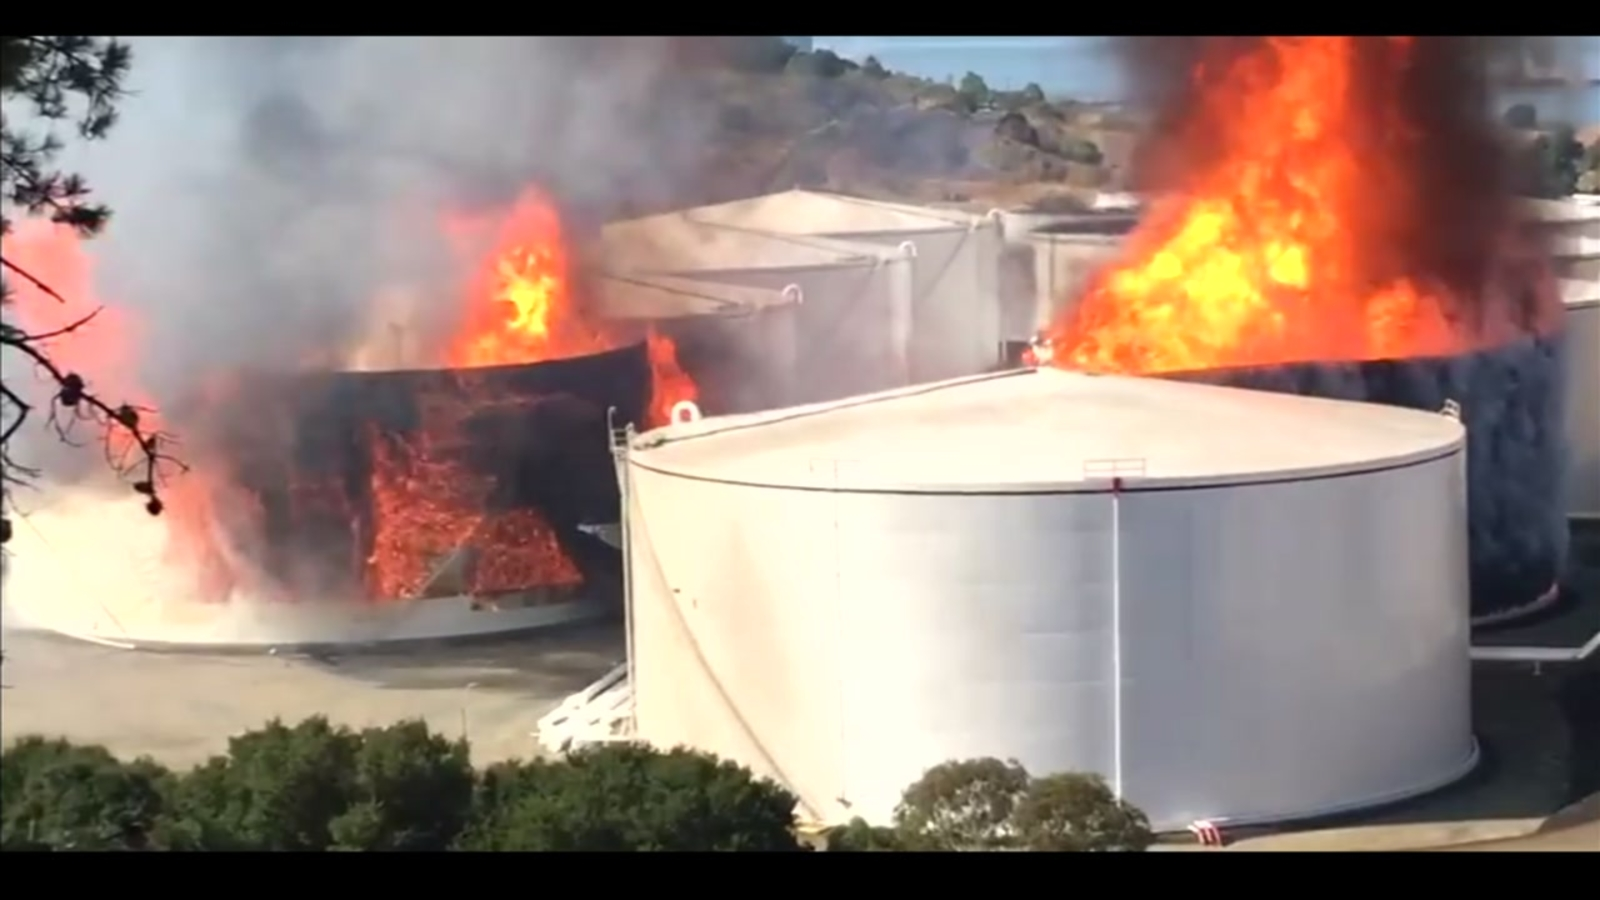 WATCH LIVE: Fire officials report incident at Rodeo refinery